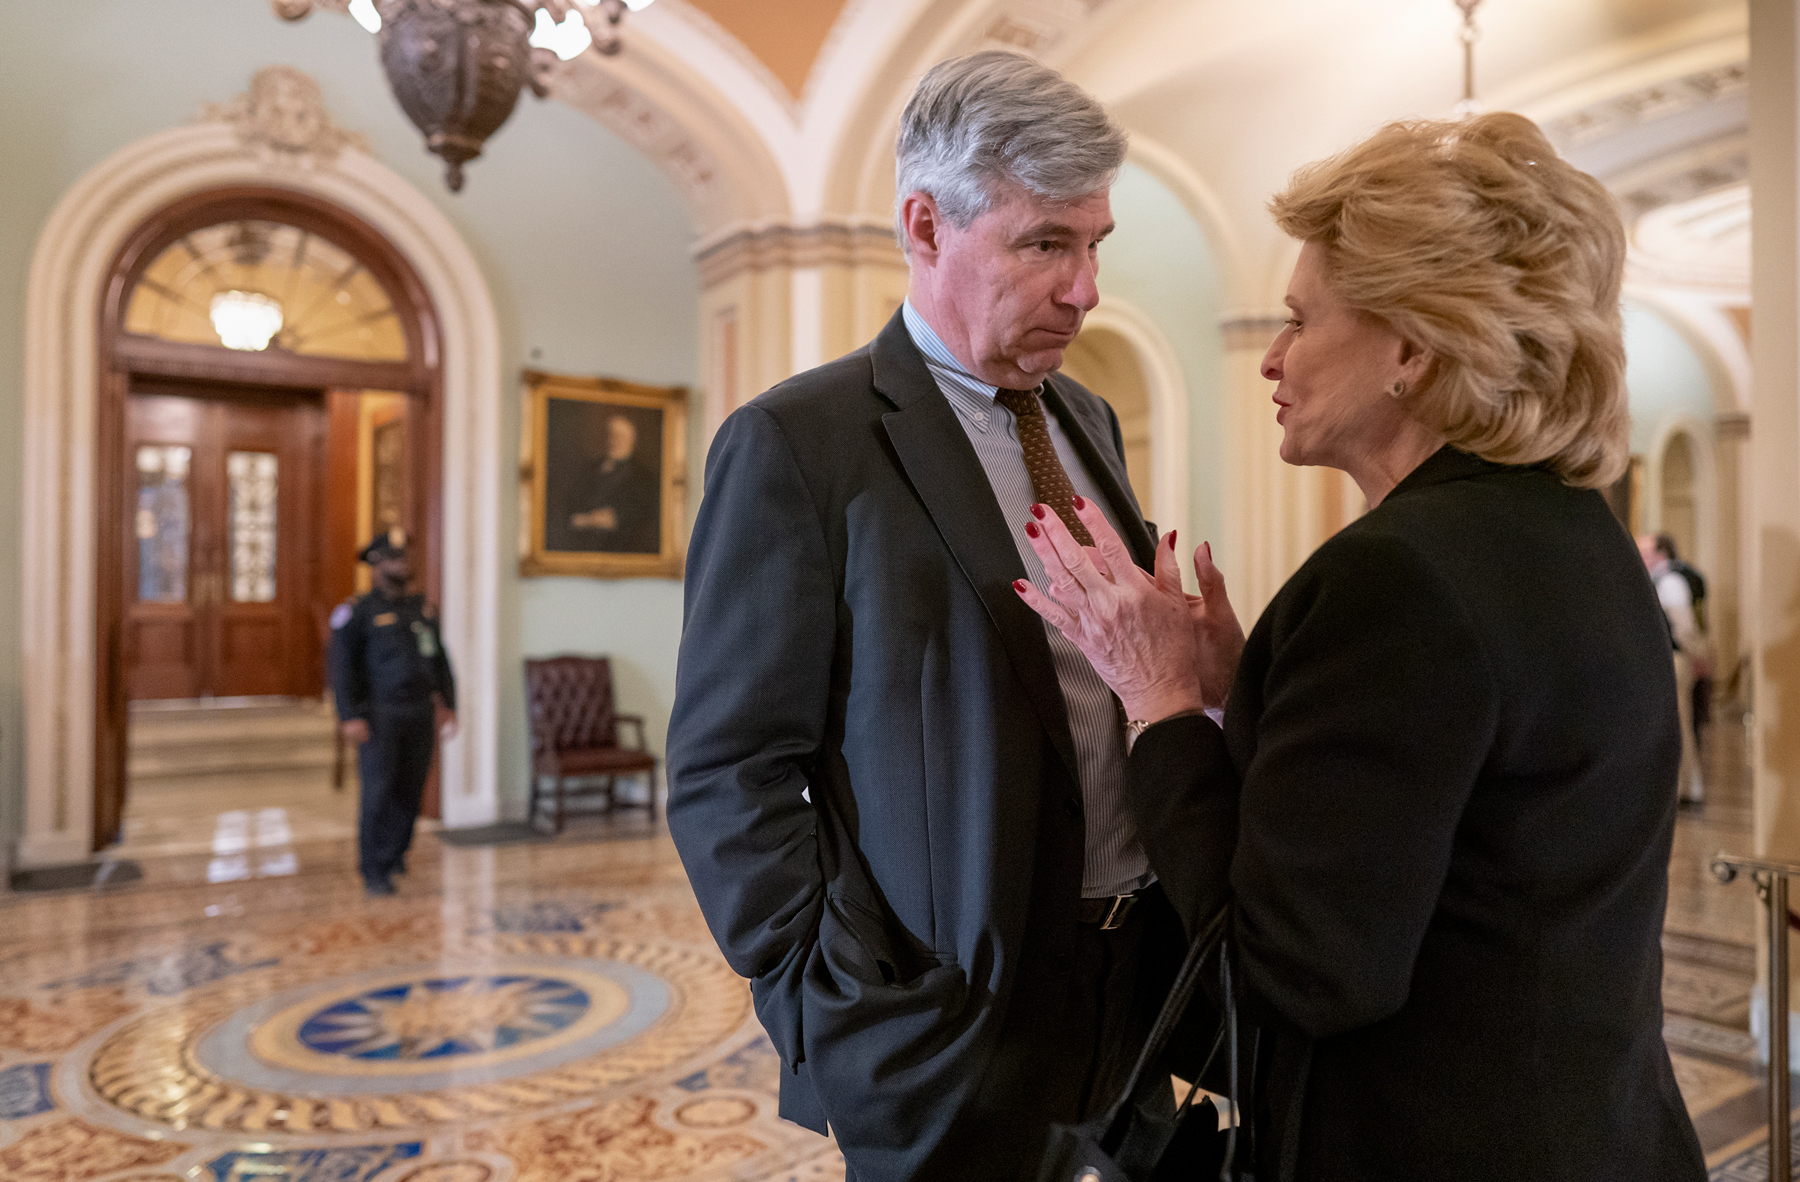 Sen. Debbie Stabenow, D-Mich., right, and Sen. Sheldon Whitehouse, D-R.I., have a private conversation outside the Senate chamber at the Capitol in Washington, Tuesday, Feb. 4, 2020. The Republican-controlled Senate is expected to acquit President Donald Trump tomorrow on impeachment charges of abuse of power and obstruction of Congress. (AP Photo/J. Scott Applewhite)